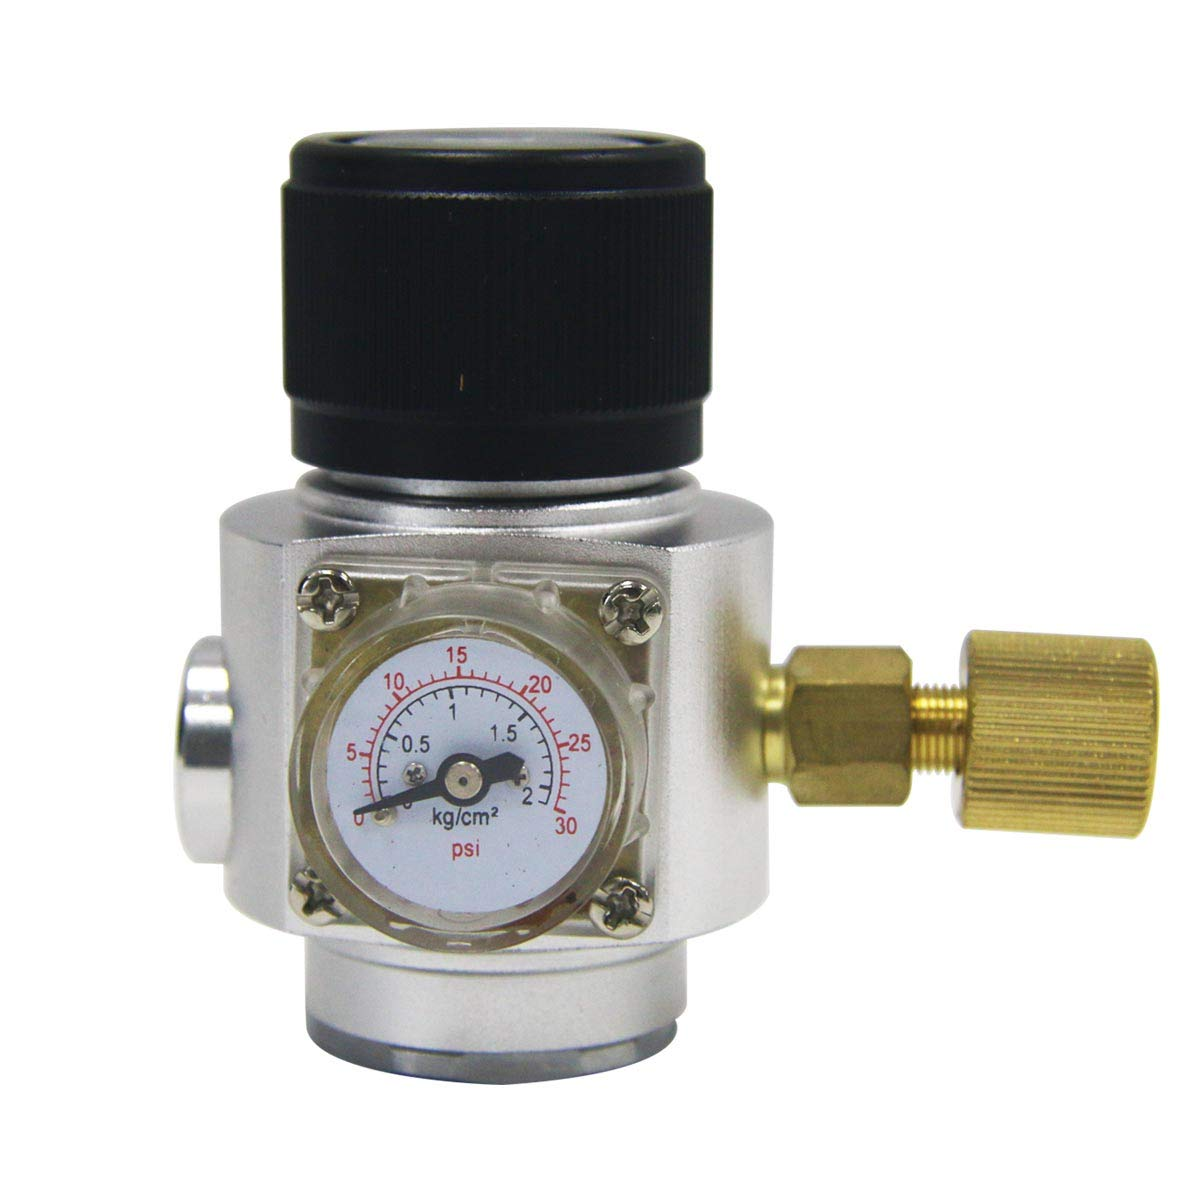 Keg Charger Mini CO2 Regulator - PERA Brand 0-30 PSI Beer Keg Mini Charger with 3/8'' thread for Home brew Beer Kegging